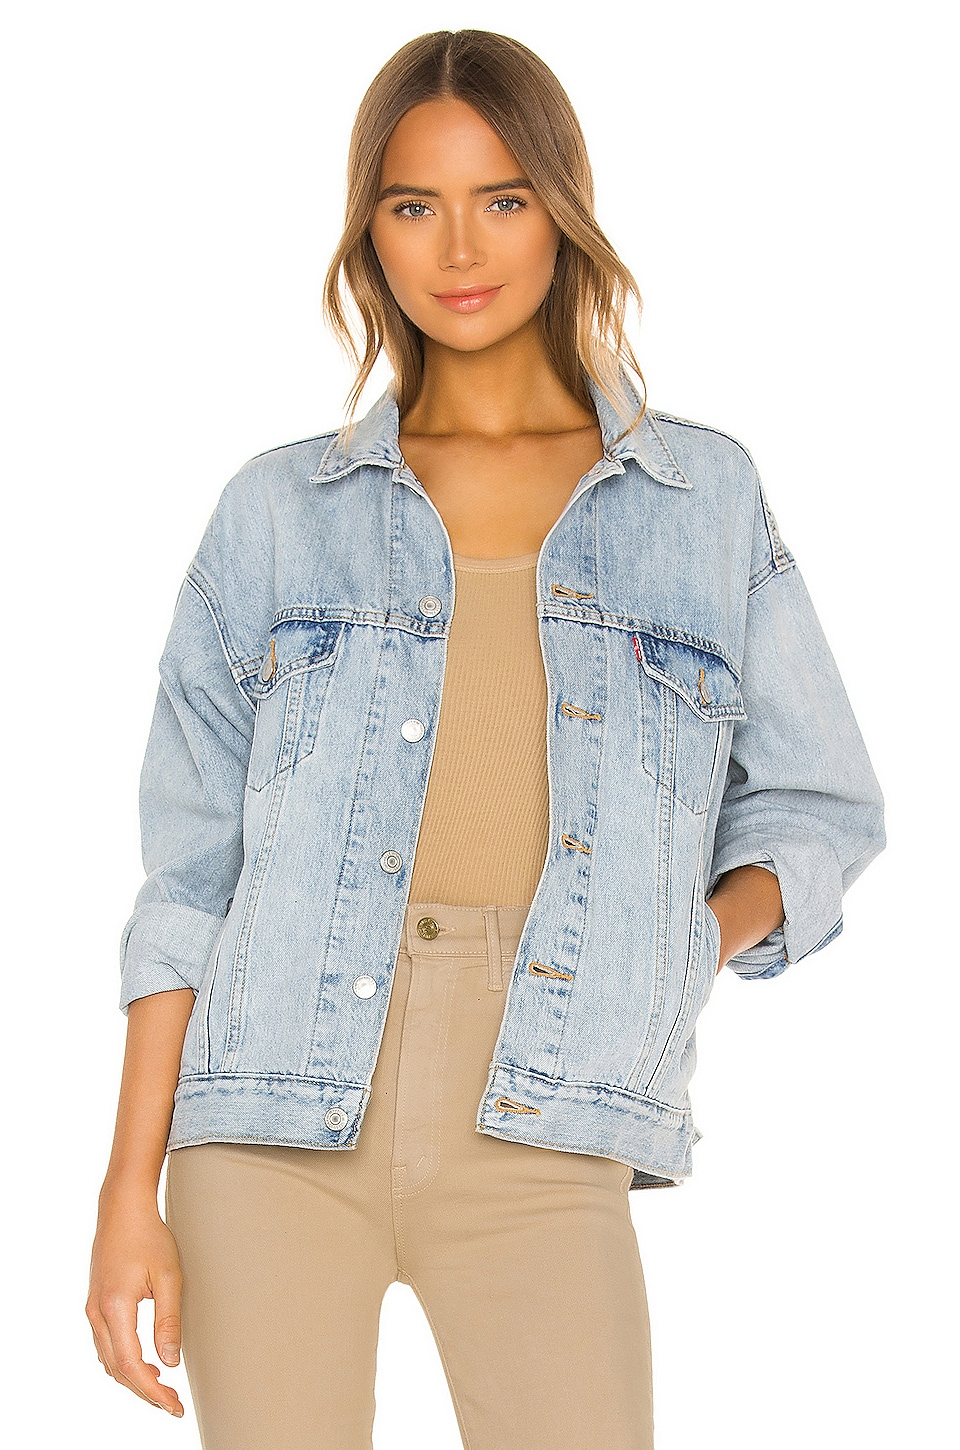 Dad Trucker Jacket             LEVI'S                                                                                                       CA$ 137.62 10